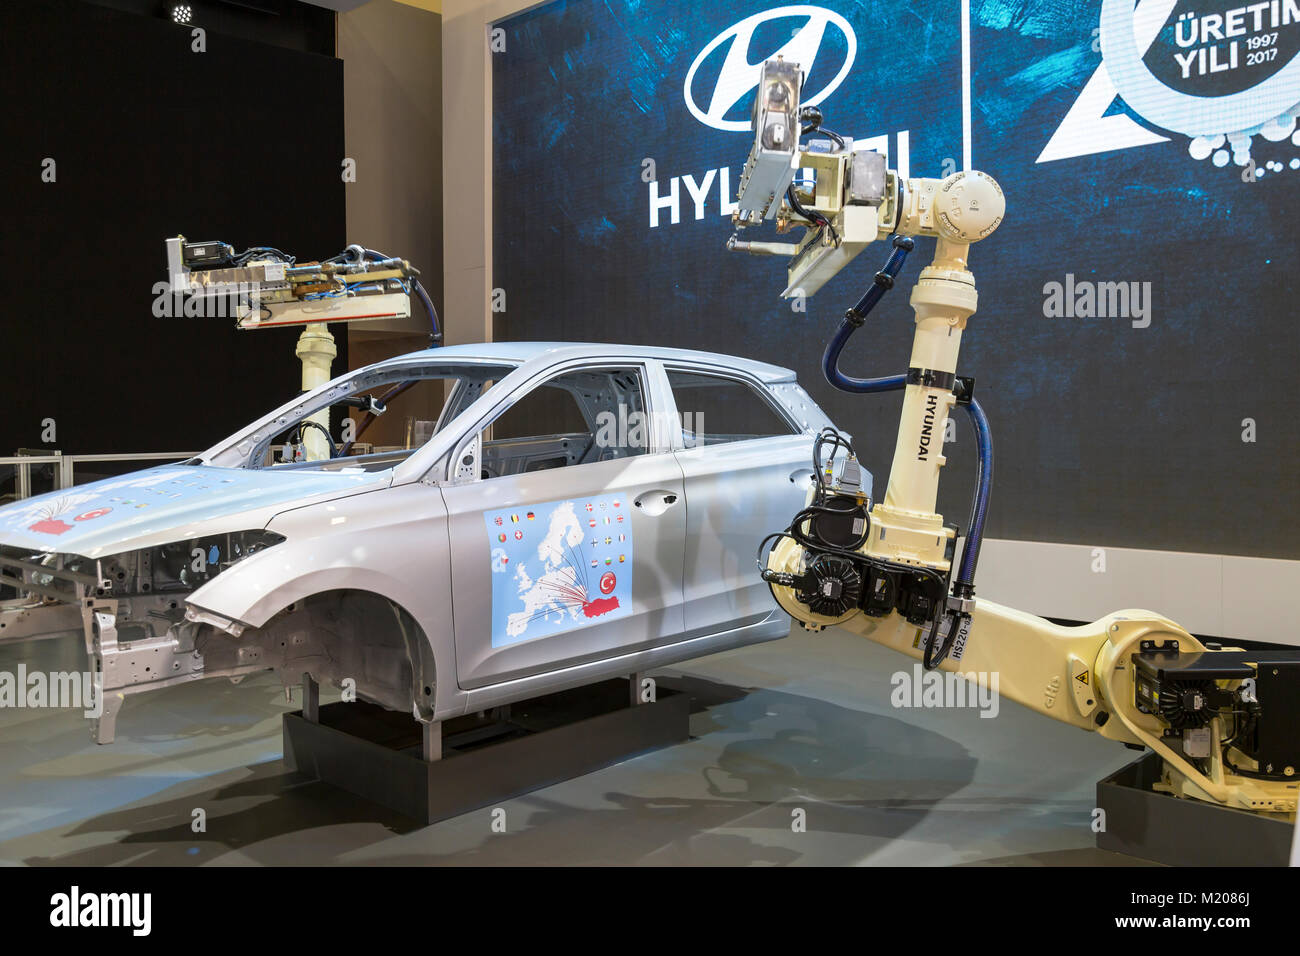 Istanbul, Turkey - April 21, 2017: During the production of Hyundai Car, which is the most growth company in last - Stock Image